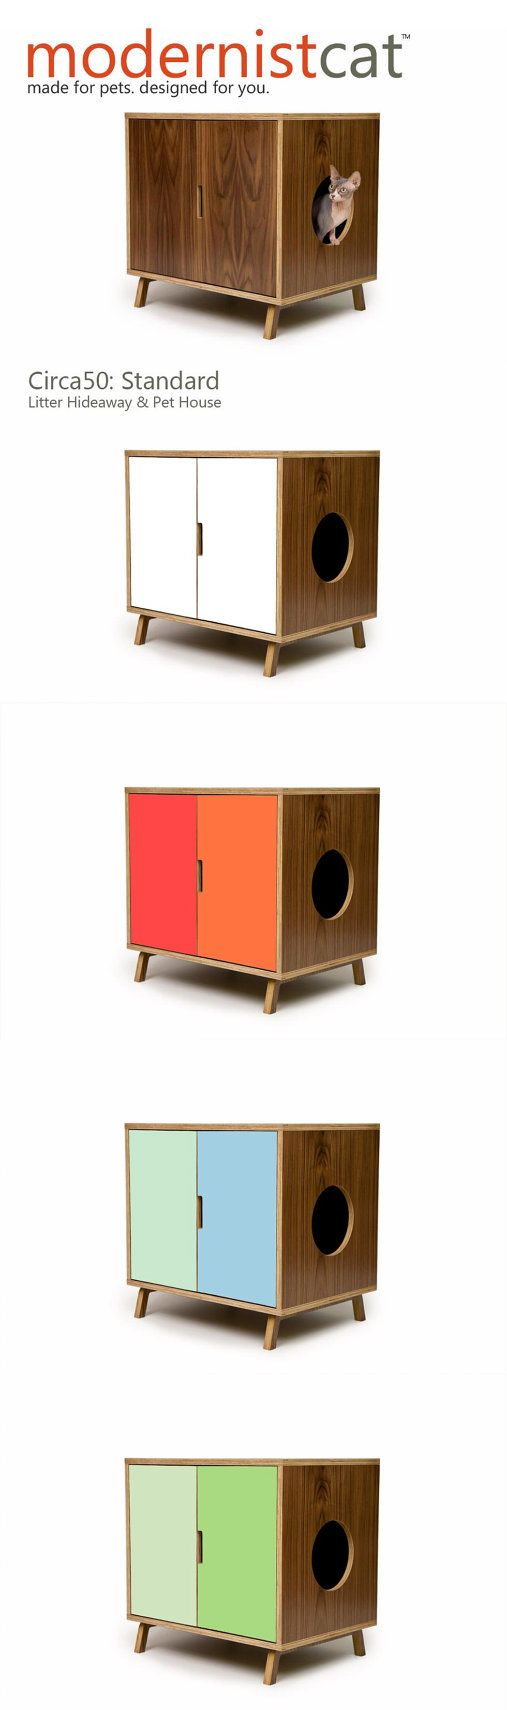 Mid Century Modern Cat Litter Box Furniture   LARGE Cat Litter Box Cover    Dog   Cat House   Walnut Side Table    Standard Cabinet. Best 25  Modern cat furniture ideas on Pinterest   Contemporary